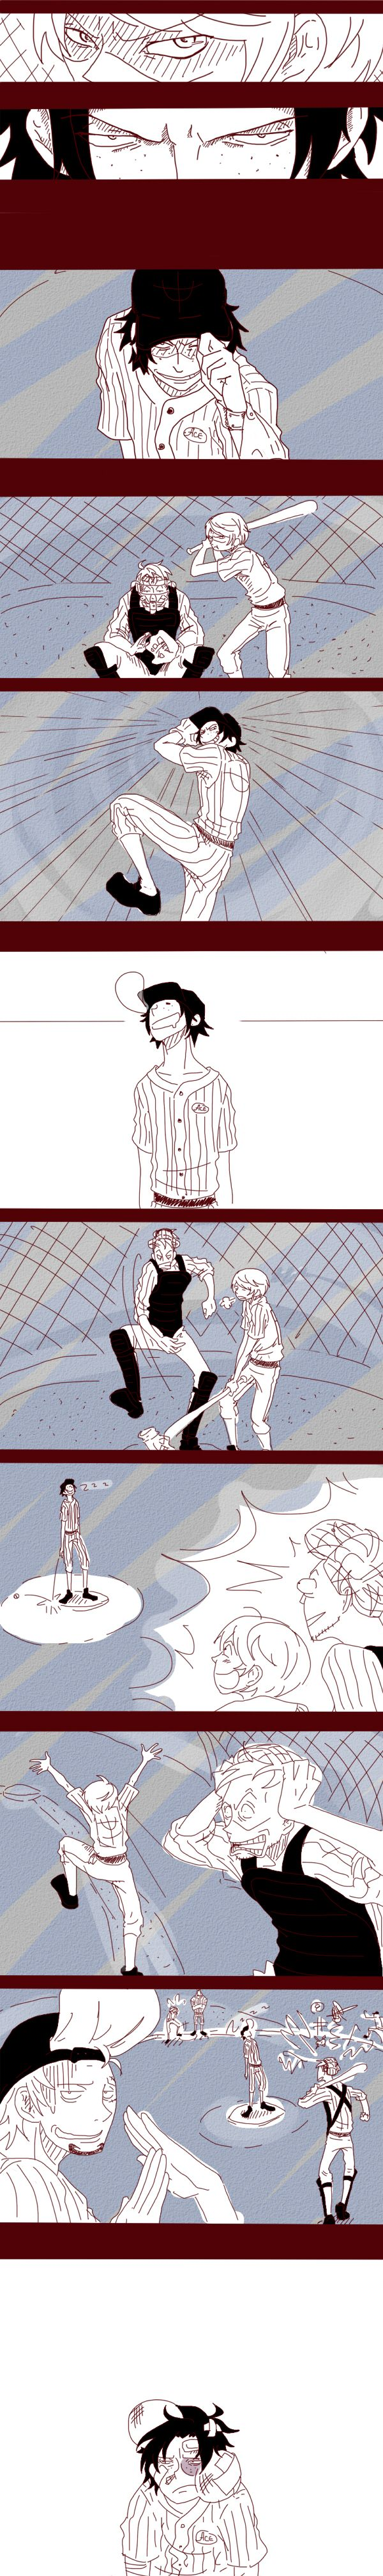 WB baseball or never play with Ace part 2 by emiru-zvezdanut.deviantart.com on @deviantART